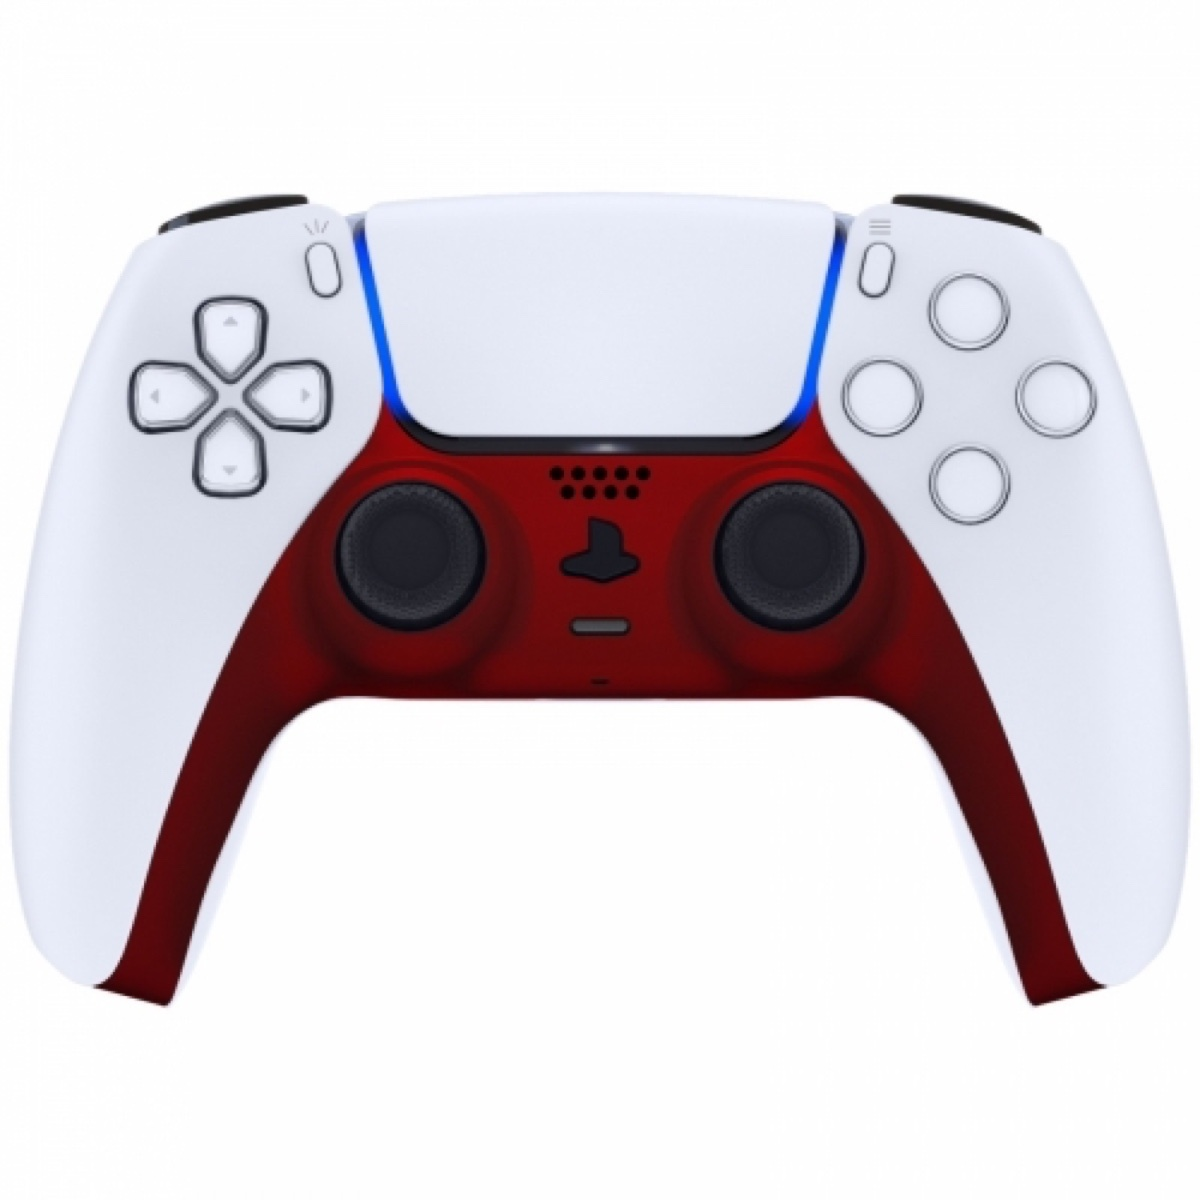 Consoleskins Sony PS5 DualSense Draadloze Controller - Rood Soft Touch Cover Custom